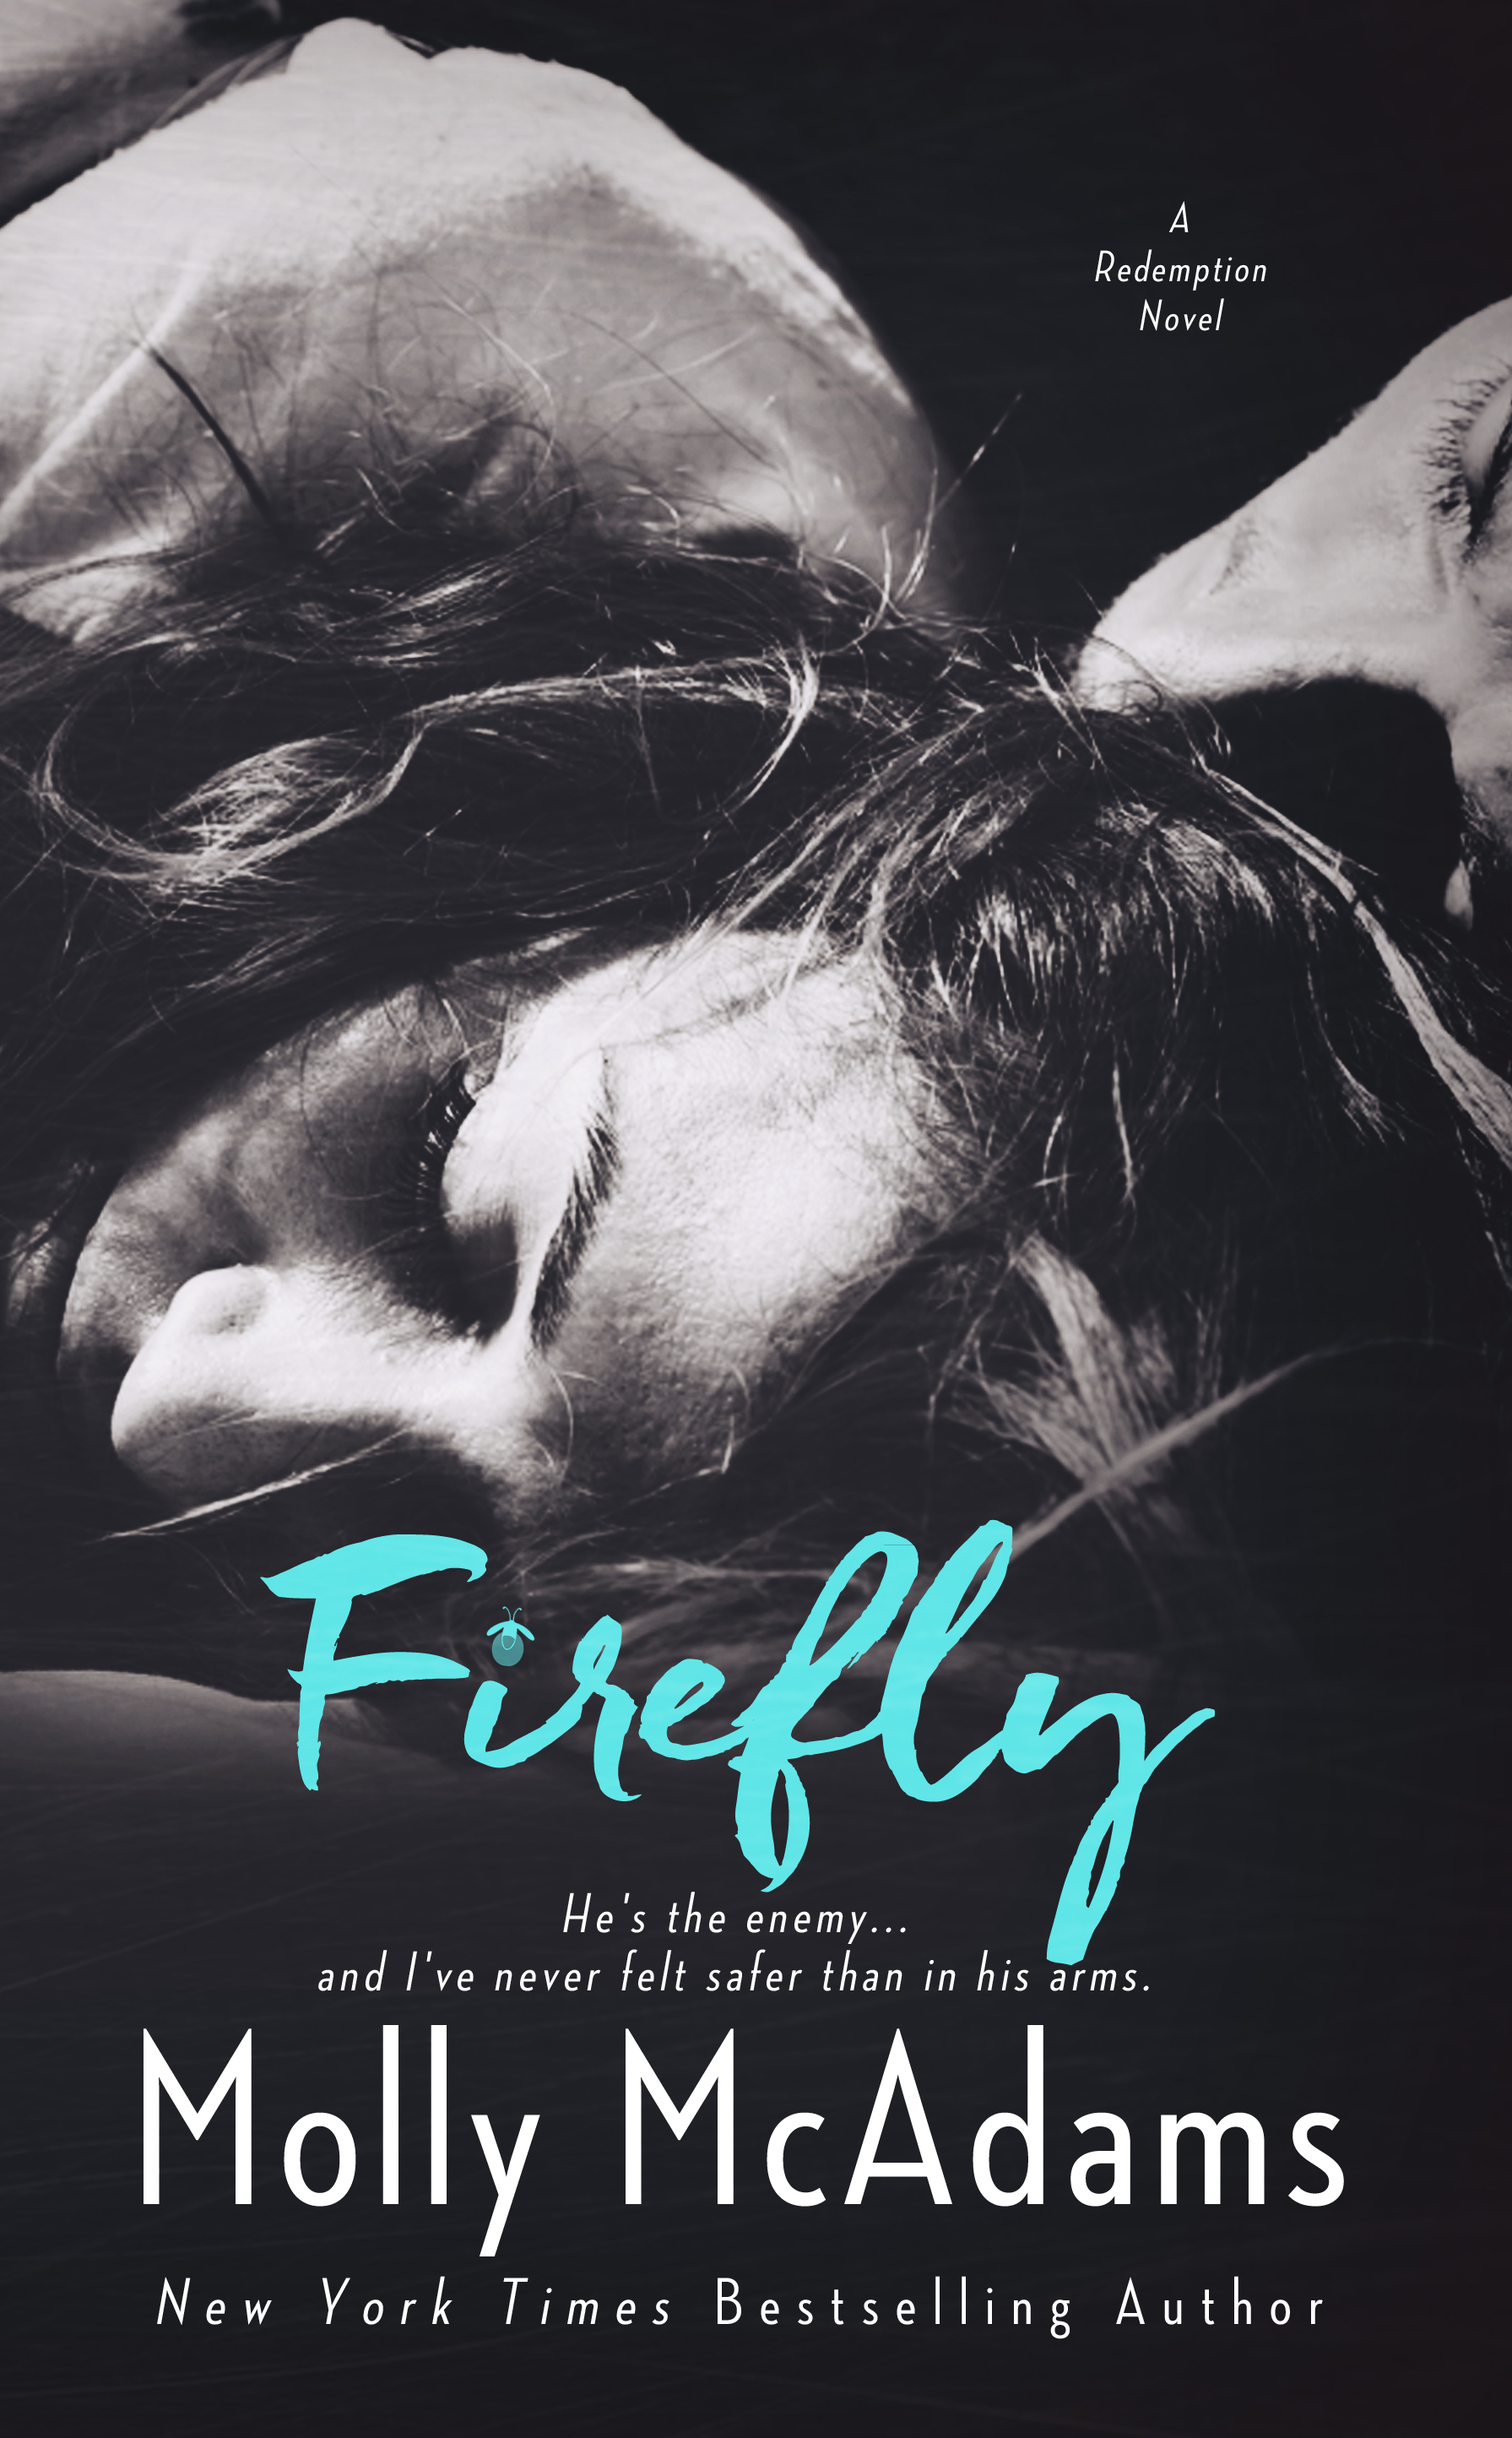 Cover Reveal: Firefly (Redemption #2) by Molly McAdams